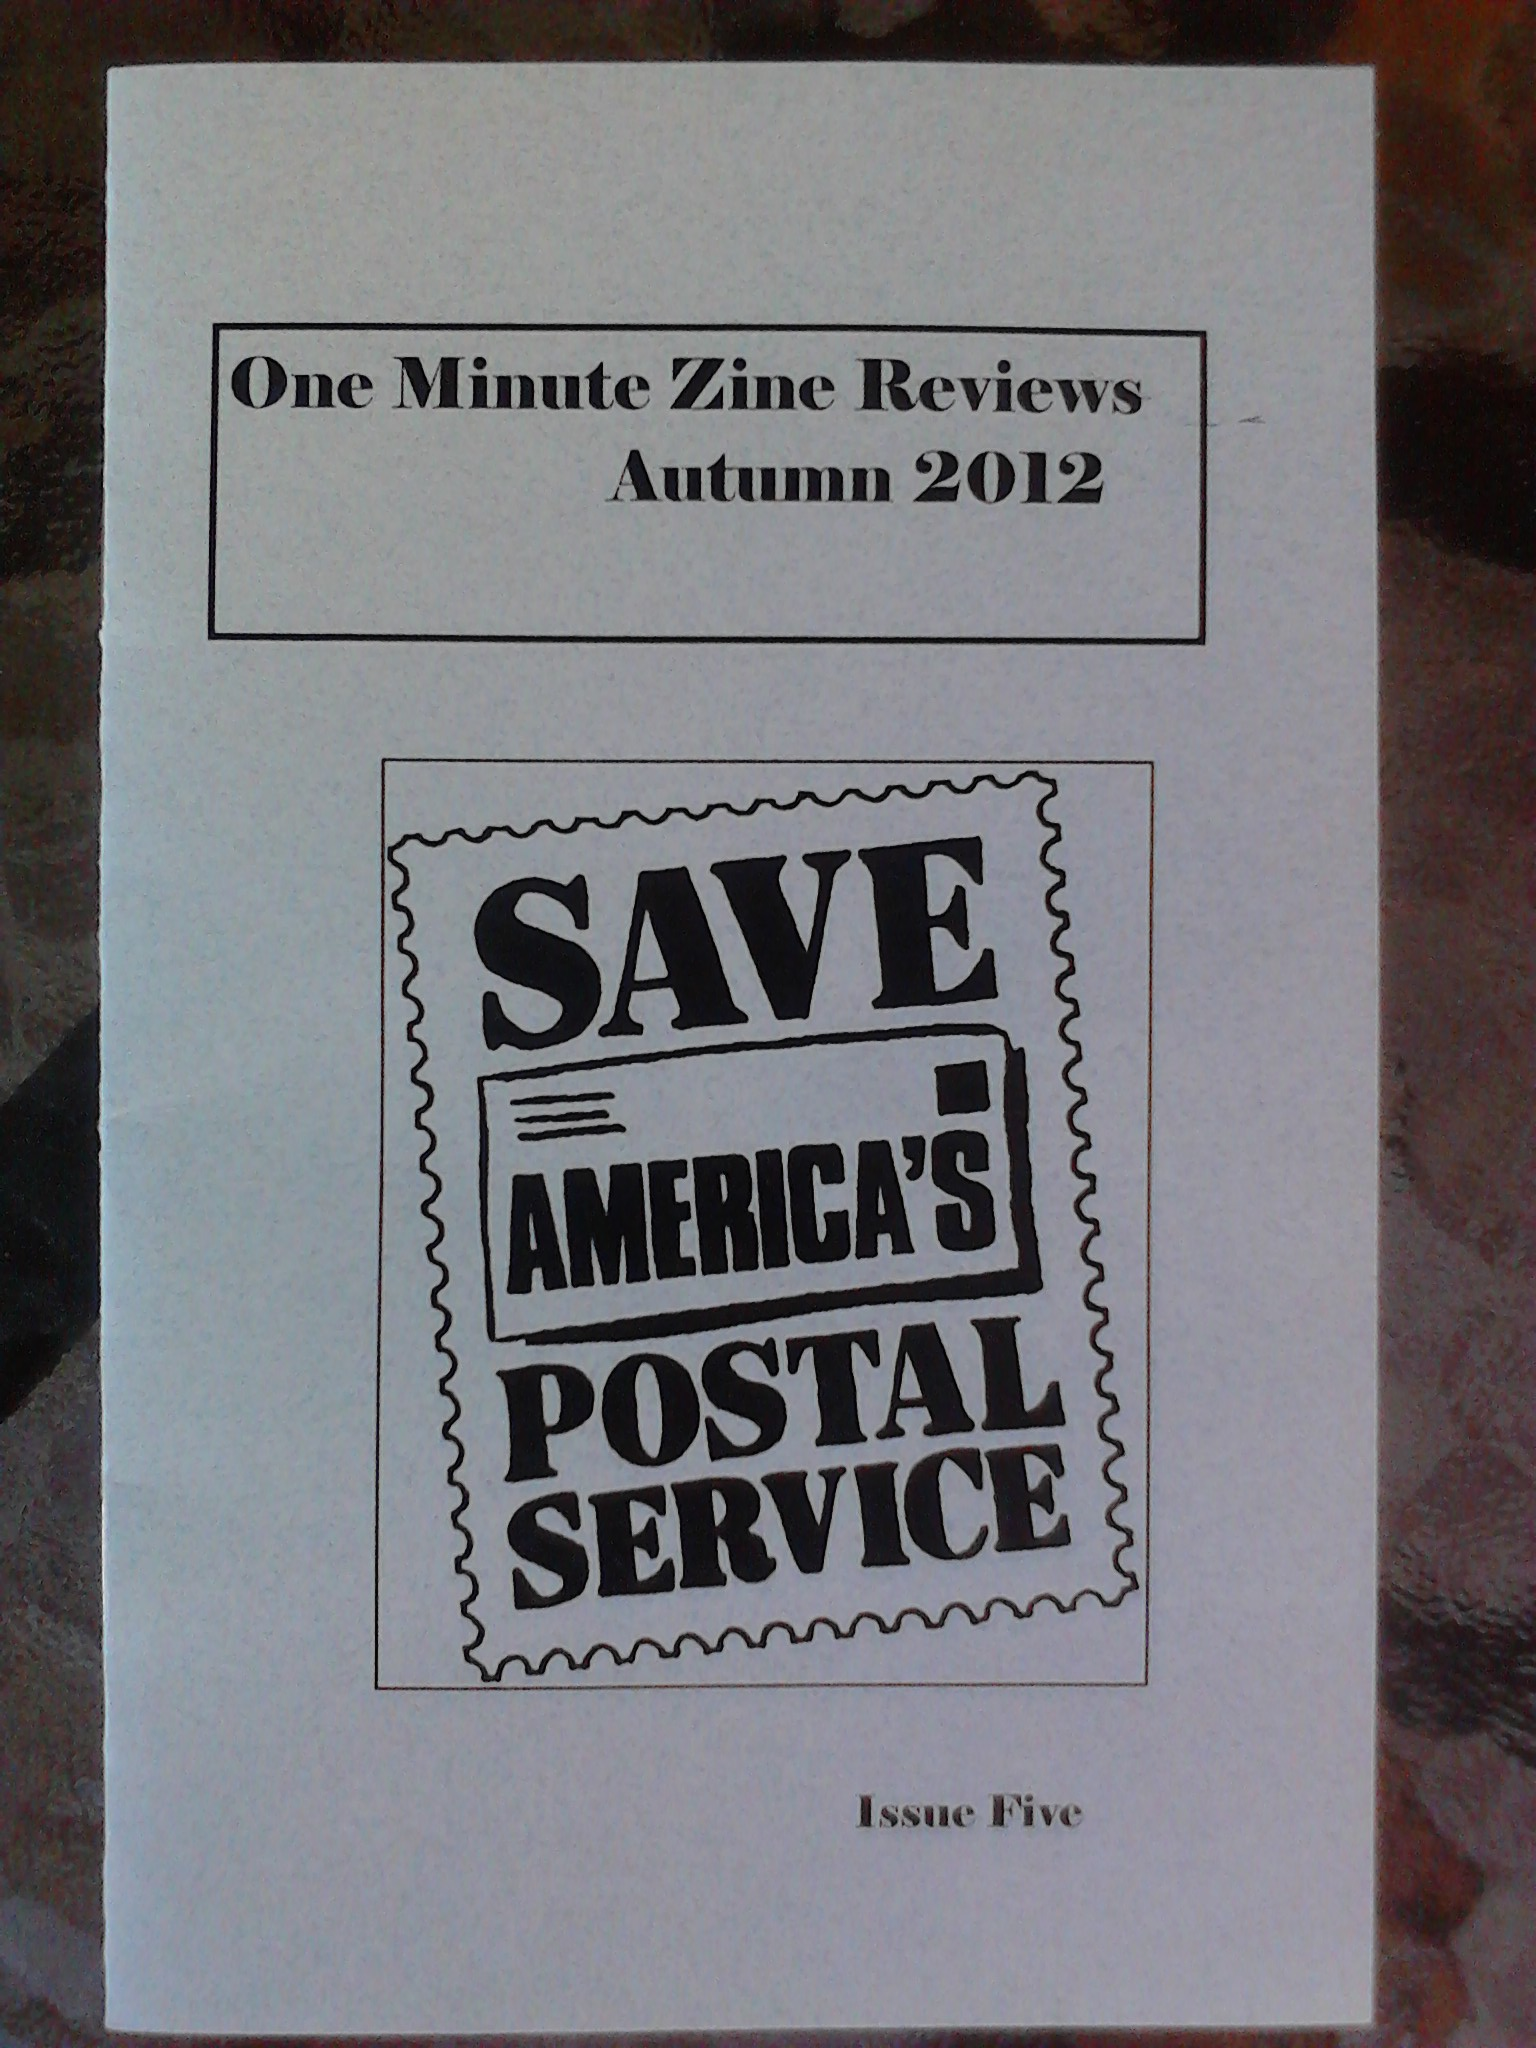 One Minute Zine Reviews Autumn 2012